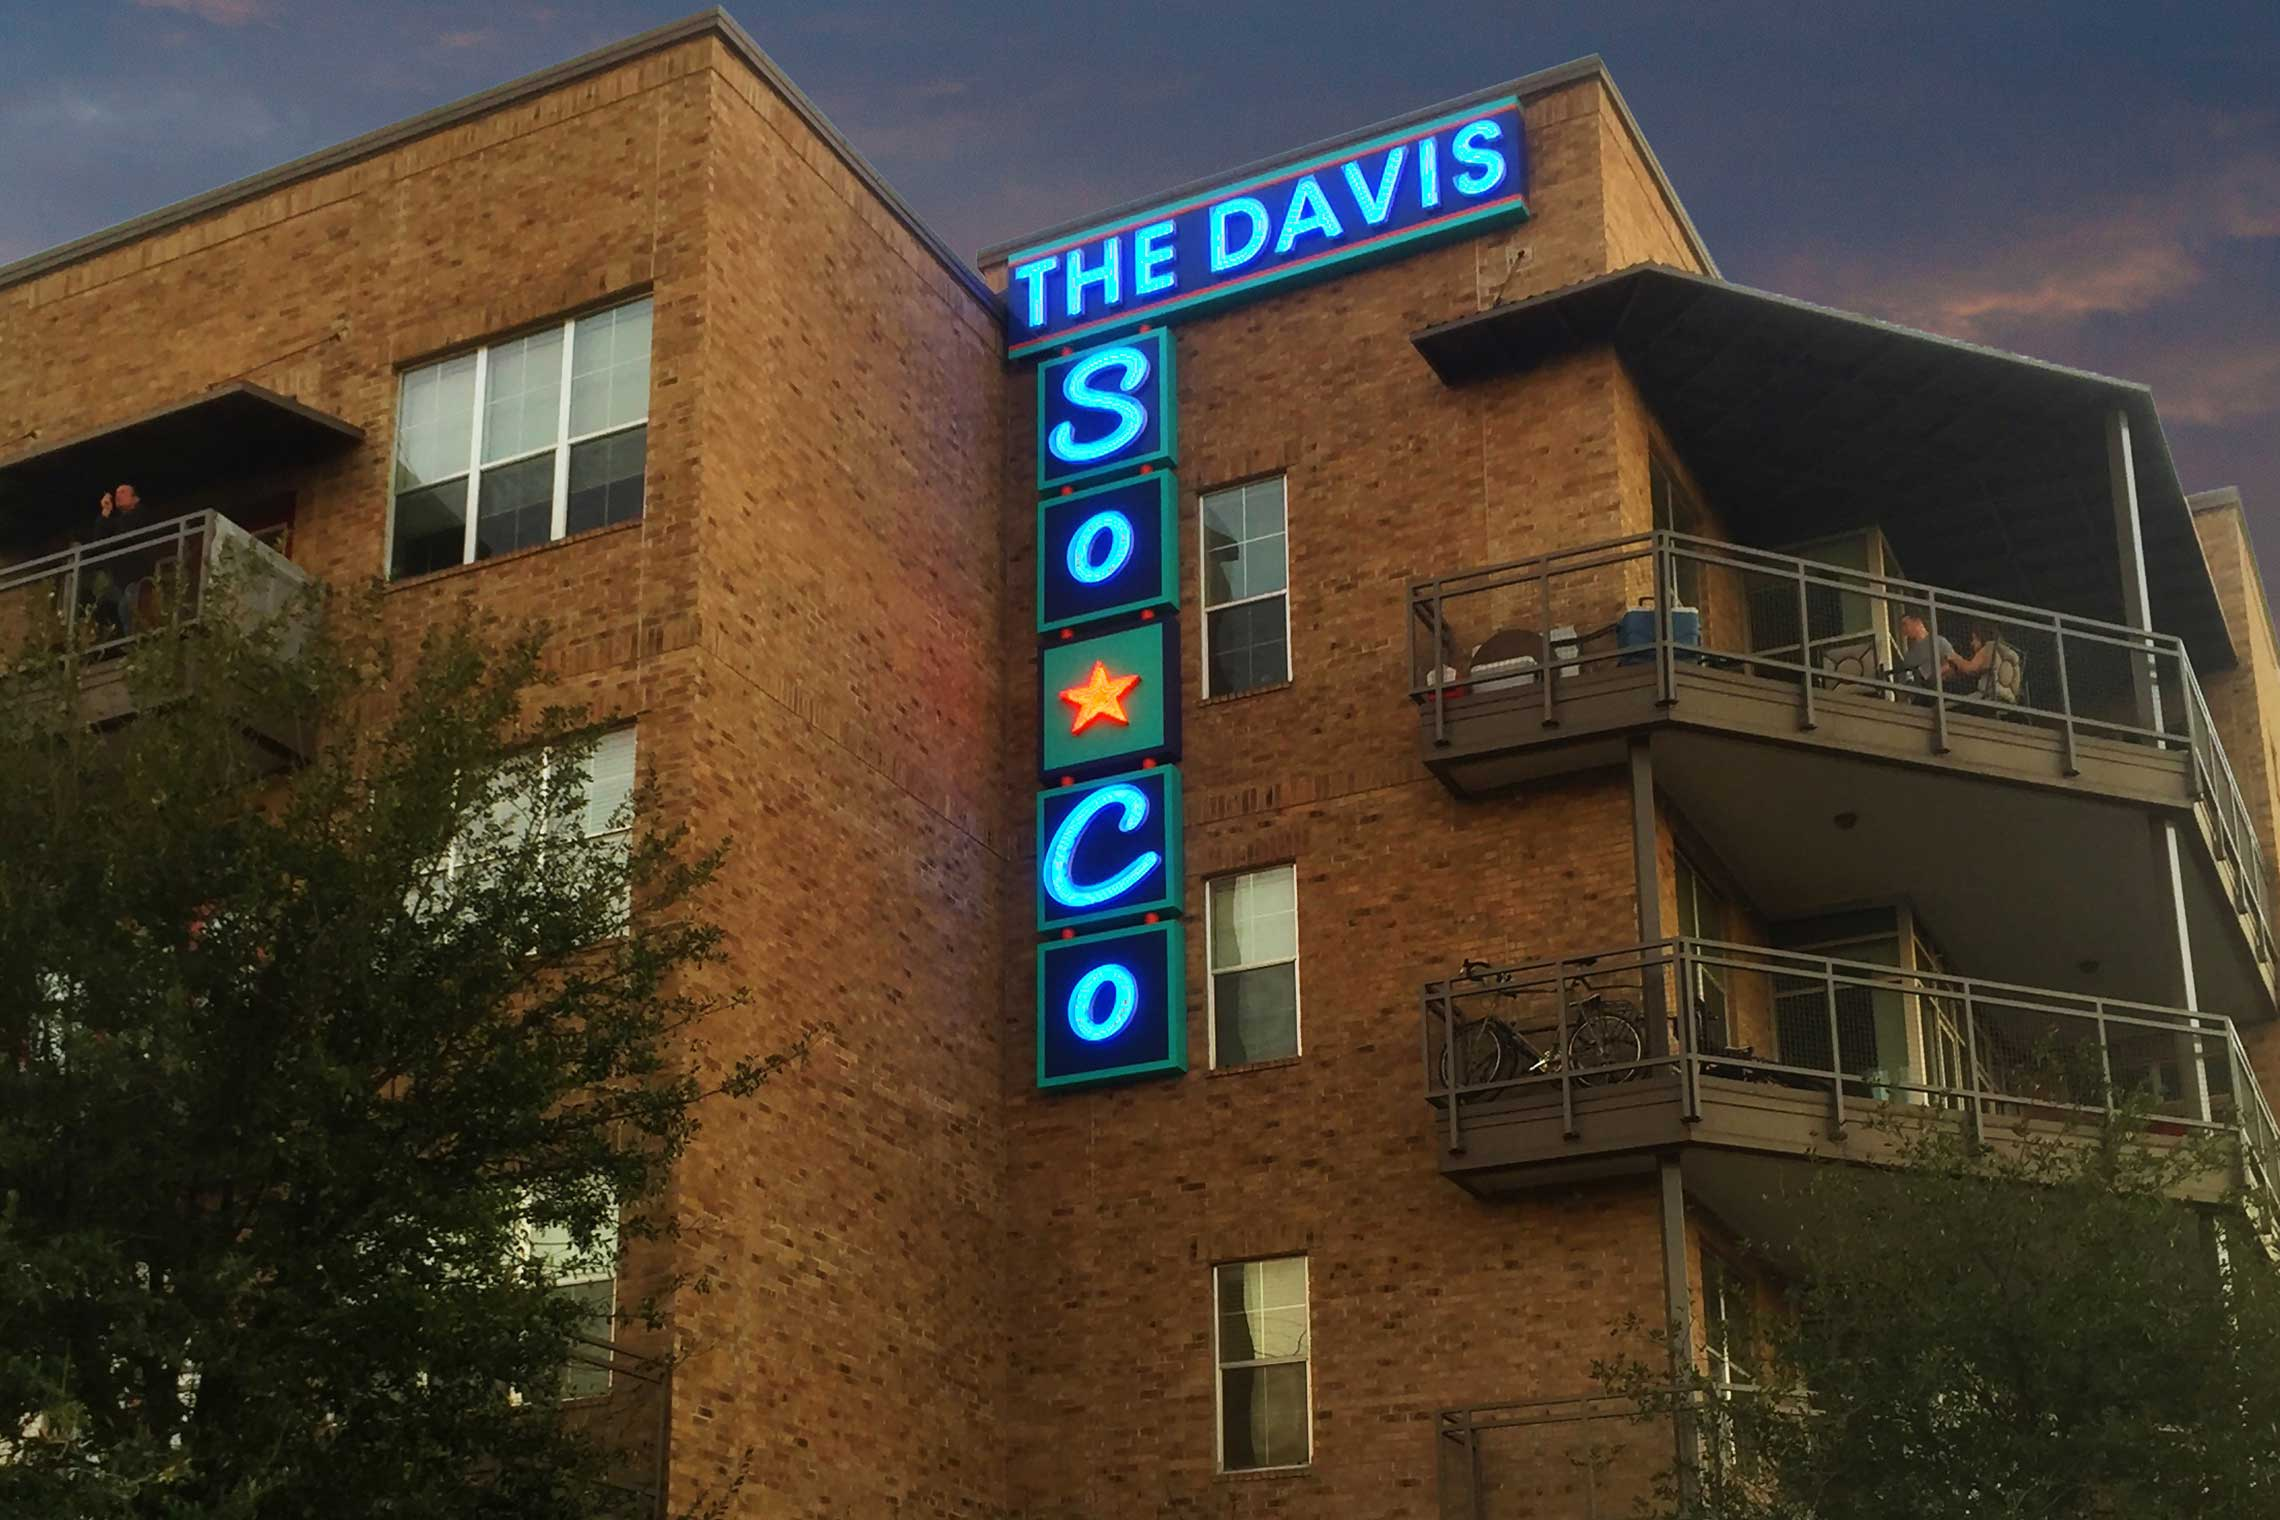 The Davis Soco Urban Industrial Illuminated Neon Wall Identity Sign at Night